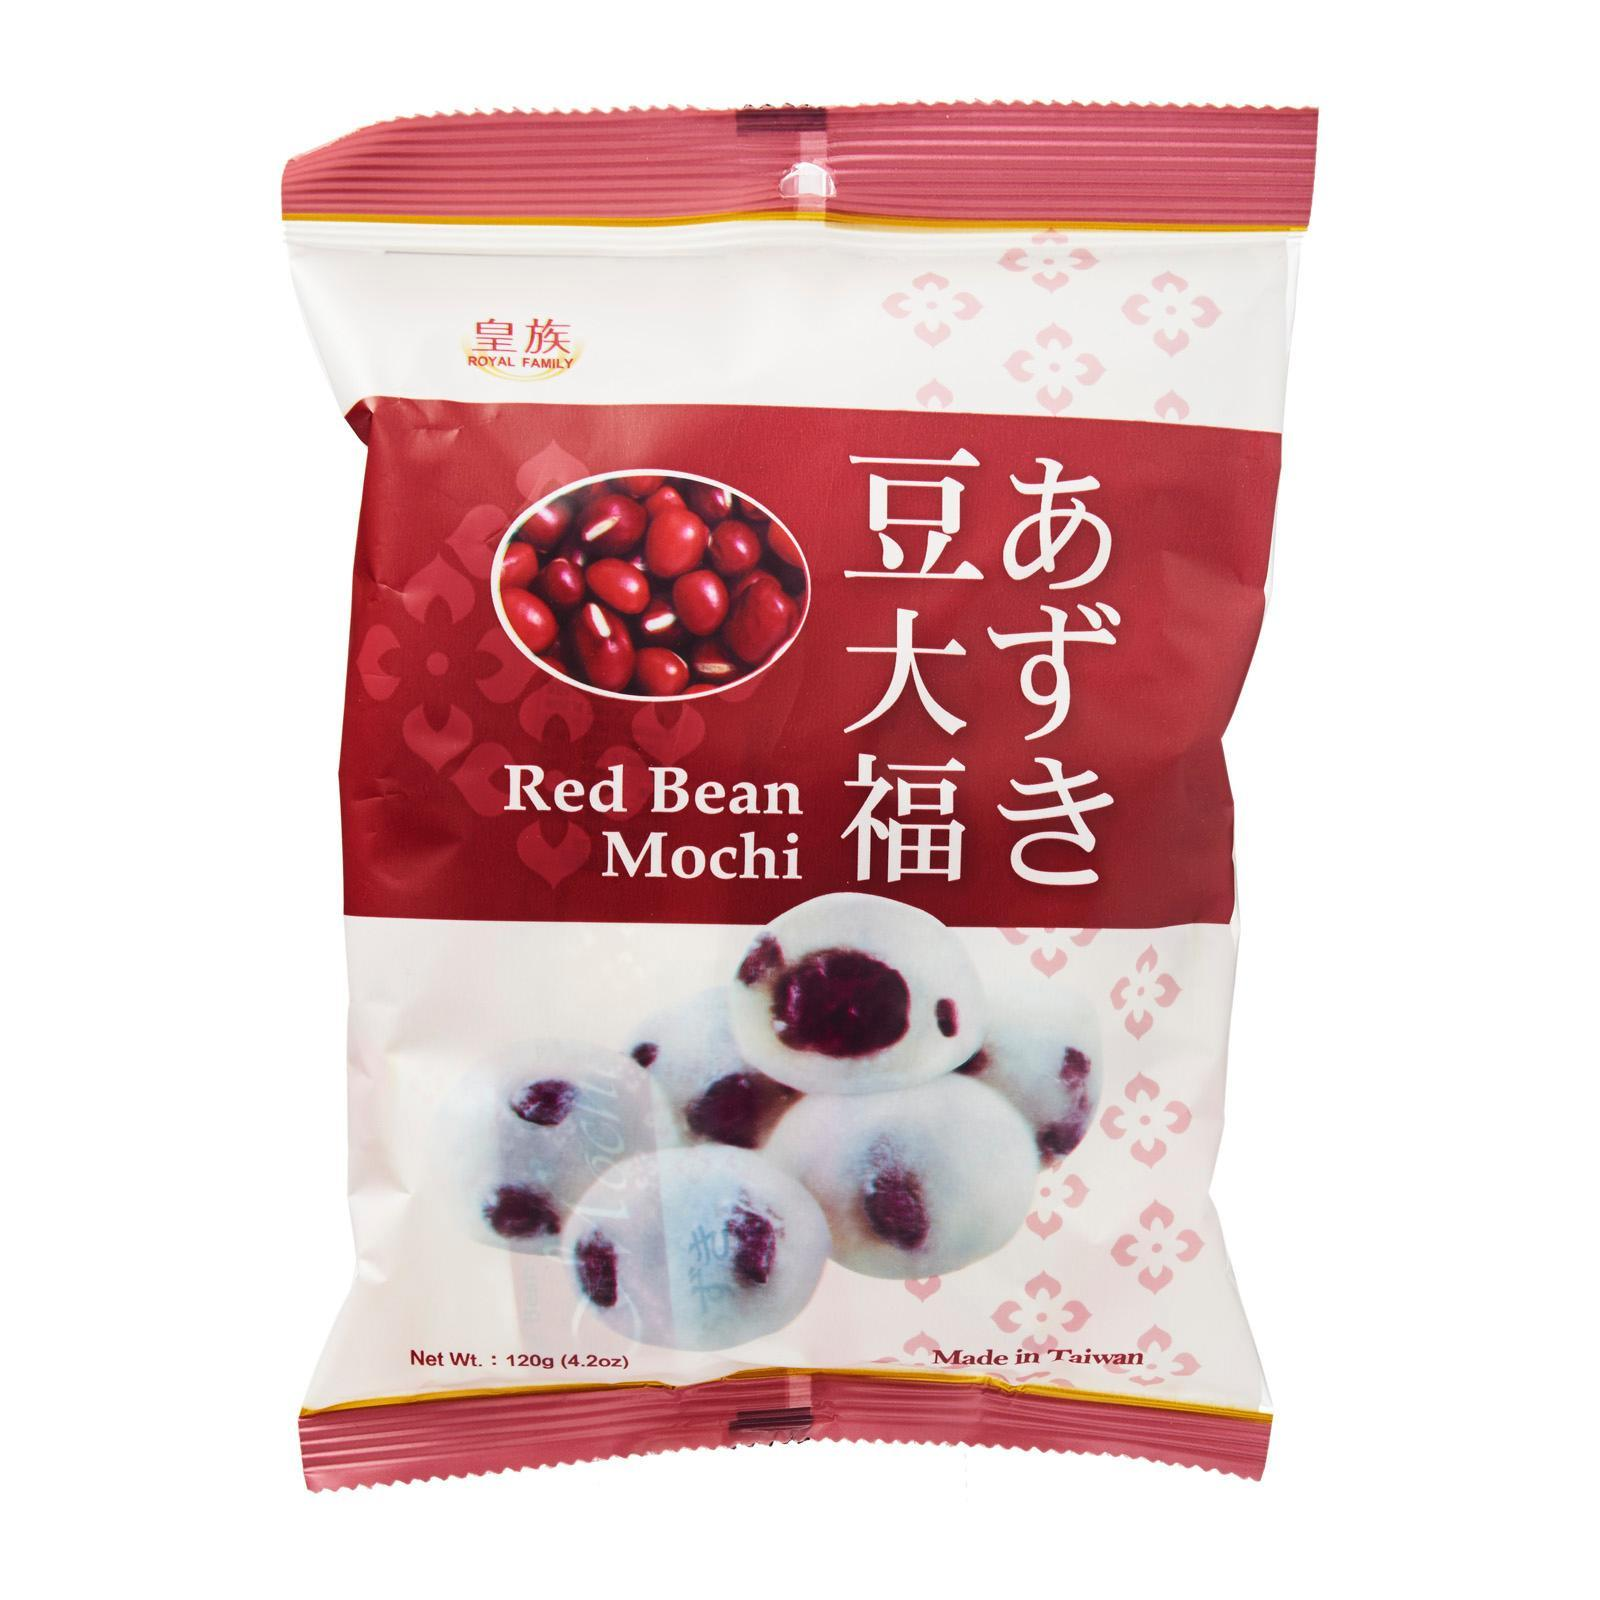 Royal Family Red Bean Mochi Packet Sweet - By Prestigio Delights